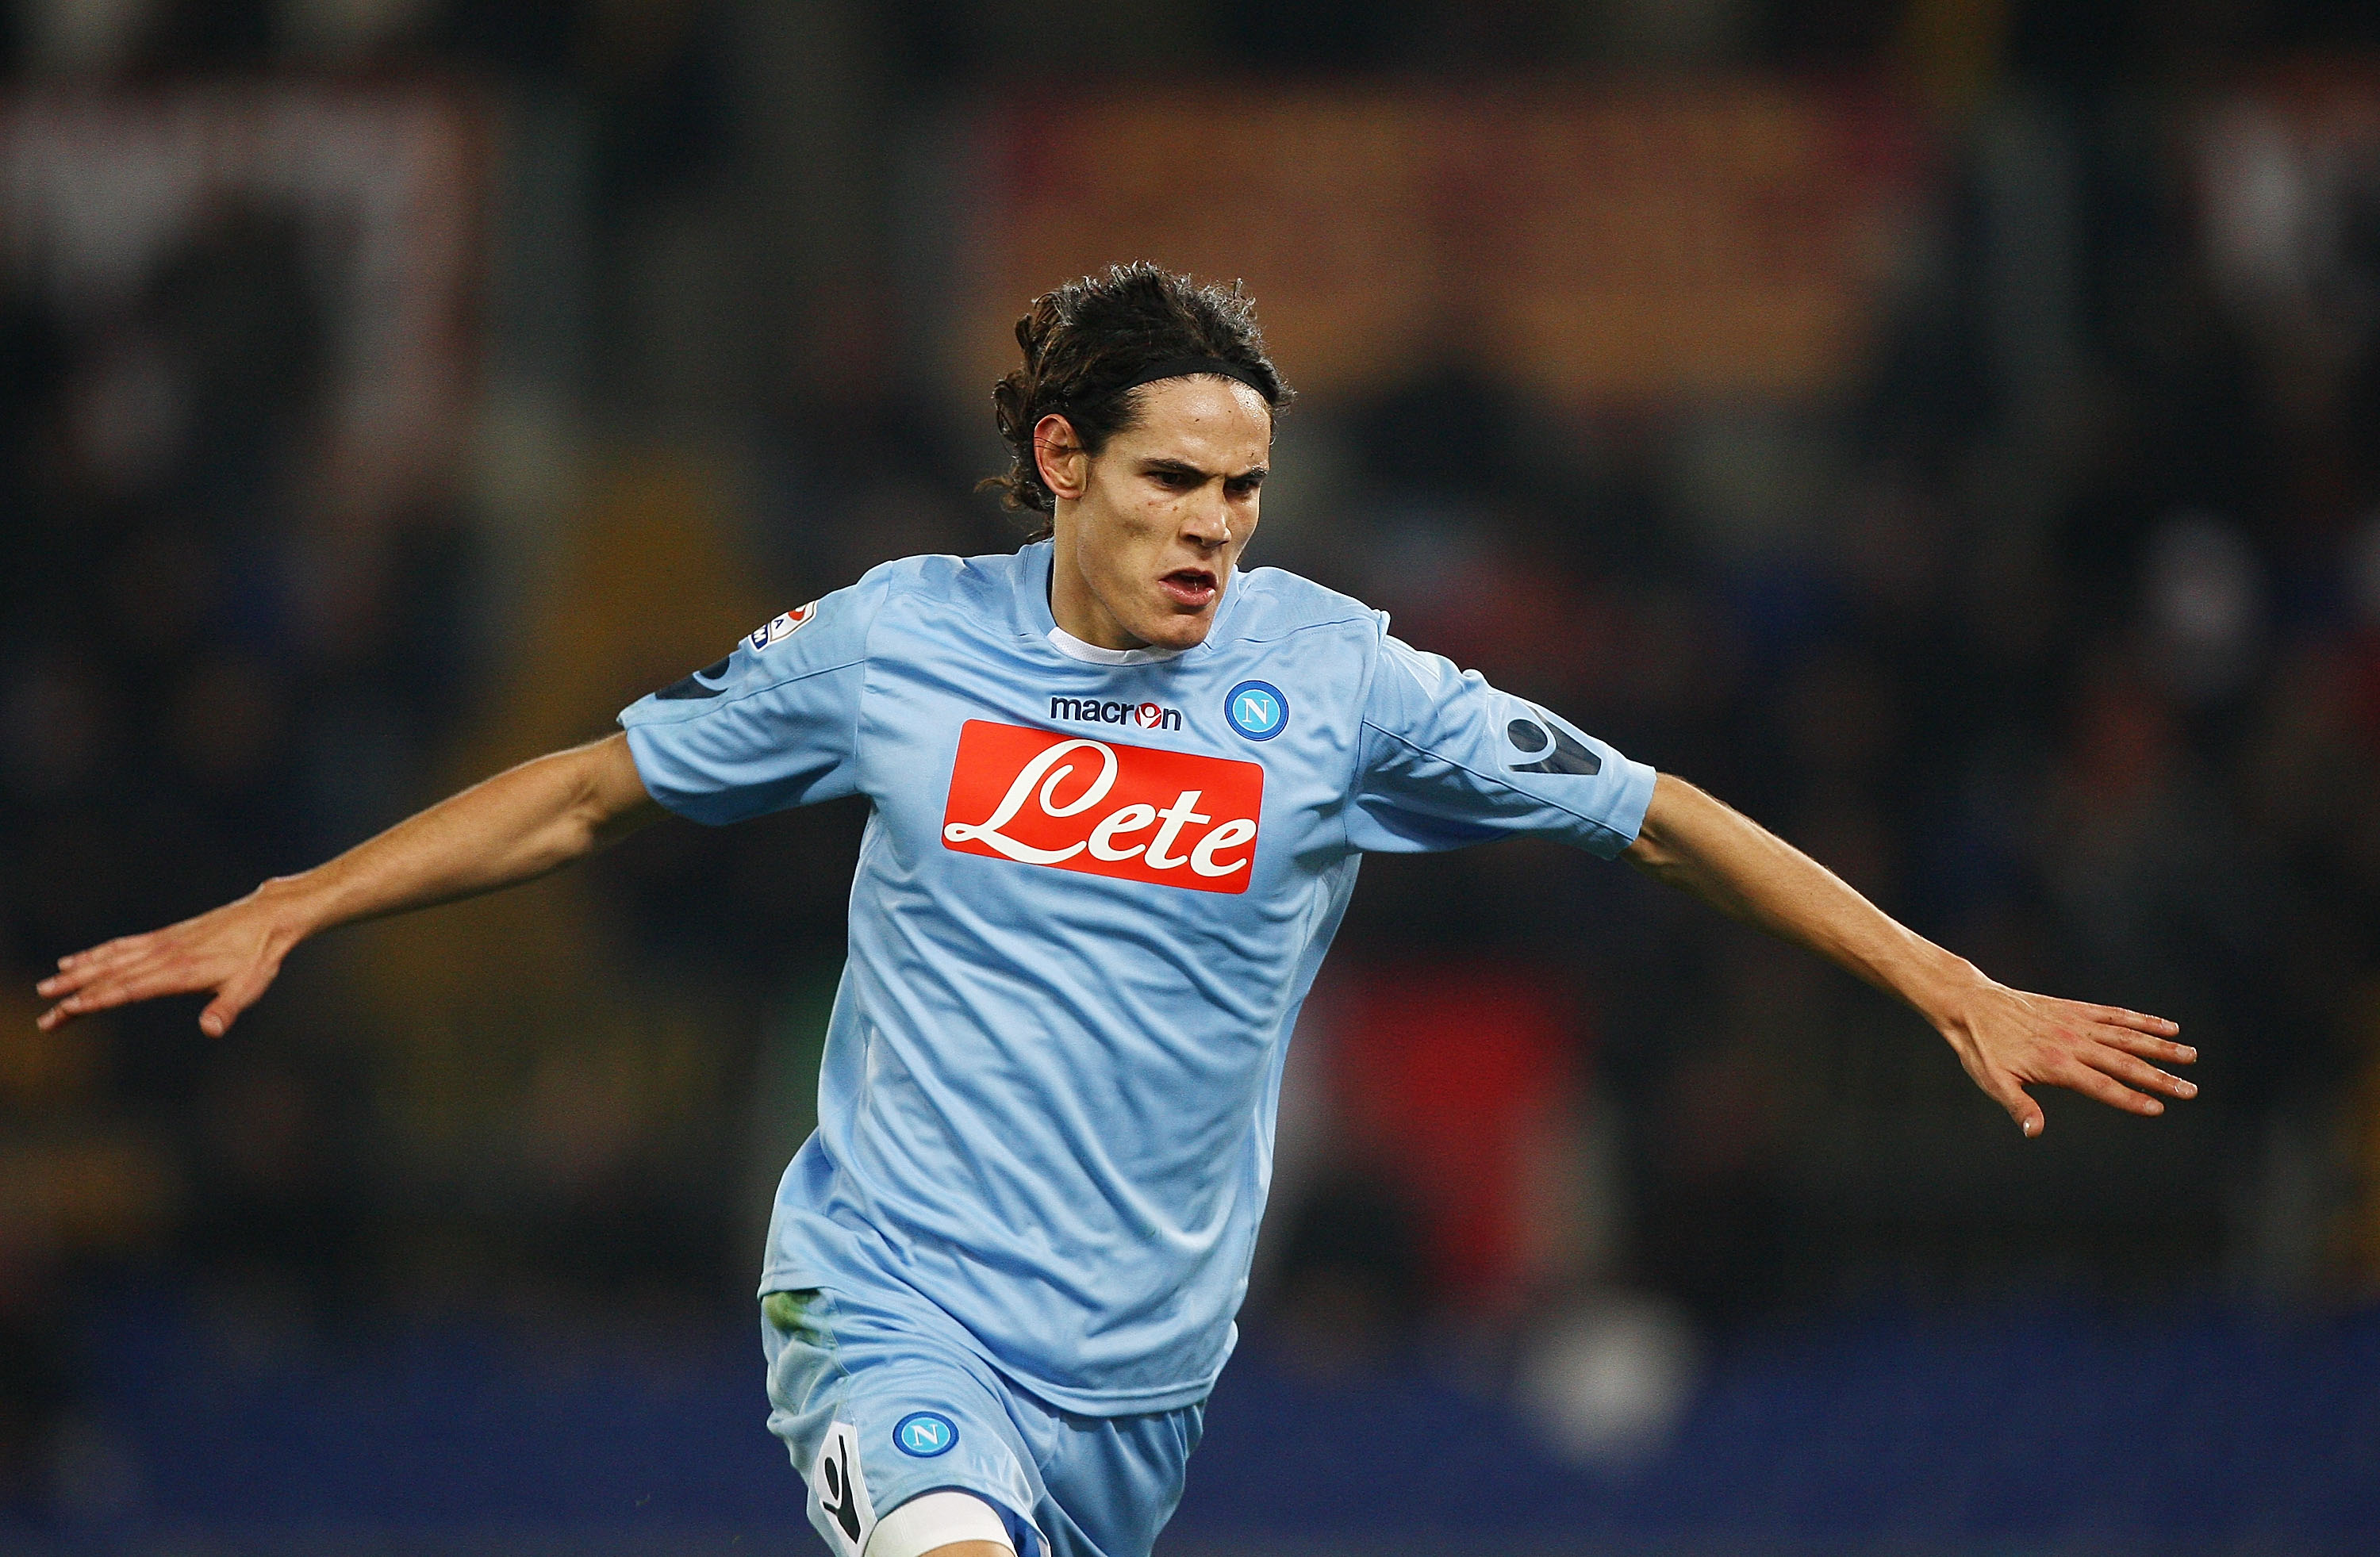 ROME, ITALY - FEBRUARY 12:  Edinson Cavani of SSC Napoli celebrates after scoring his second goal during the Serie A match between AS Roma and SSC Napoli at Stadio Olimpico on February 12, 2011 in Rome, Italy.  (Photo by Paolo Bruno/Getty Images)